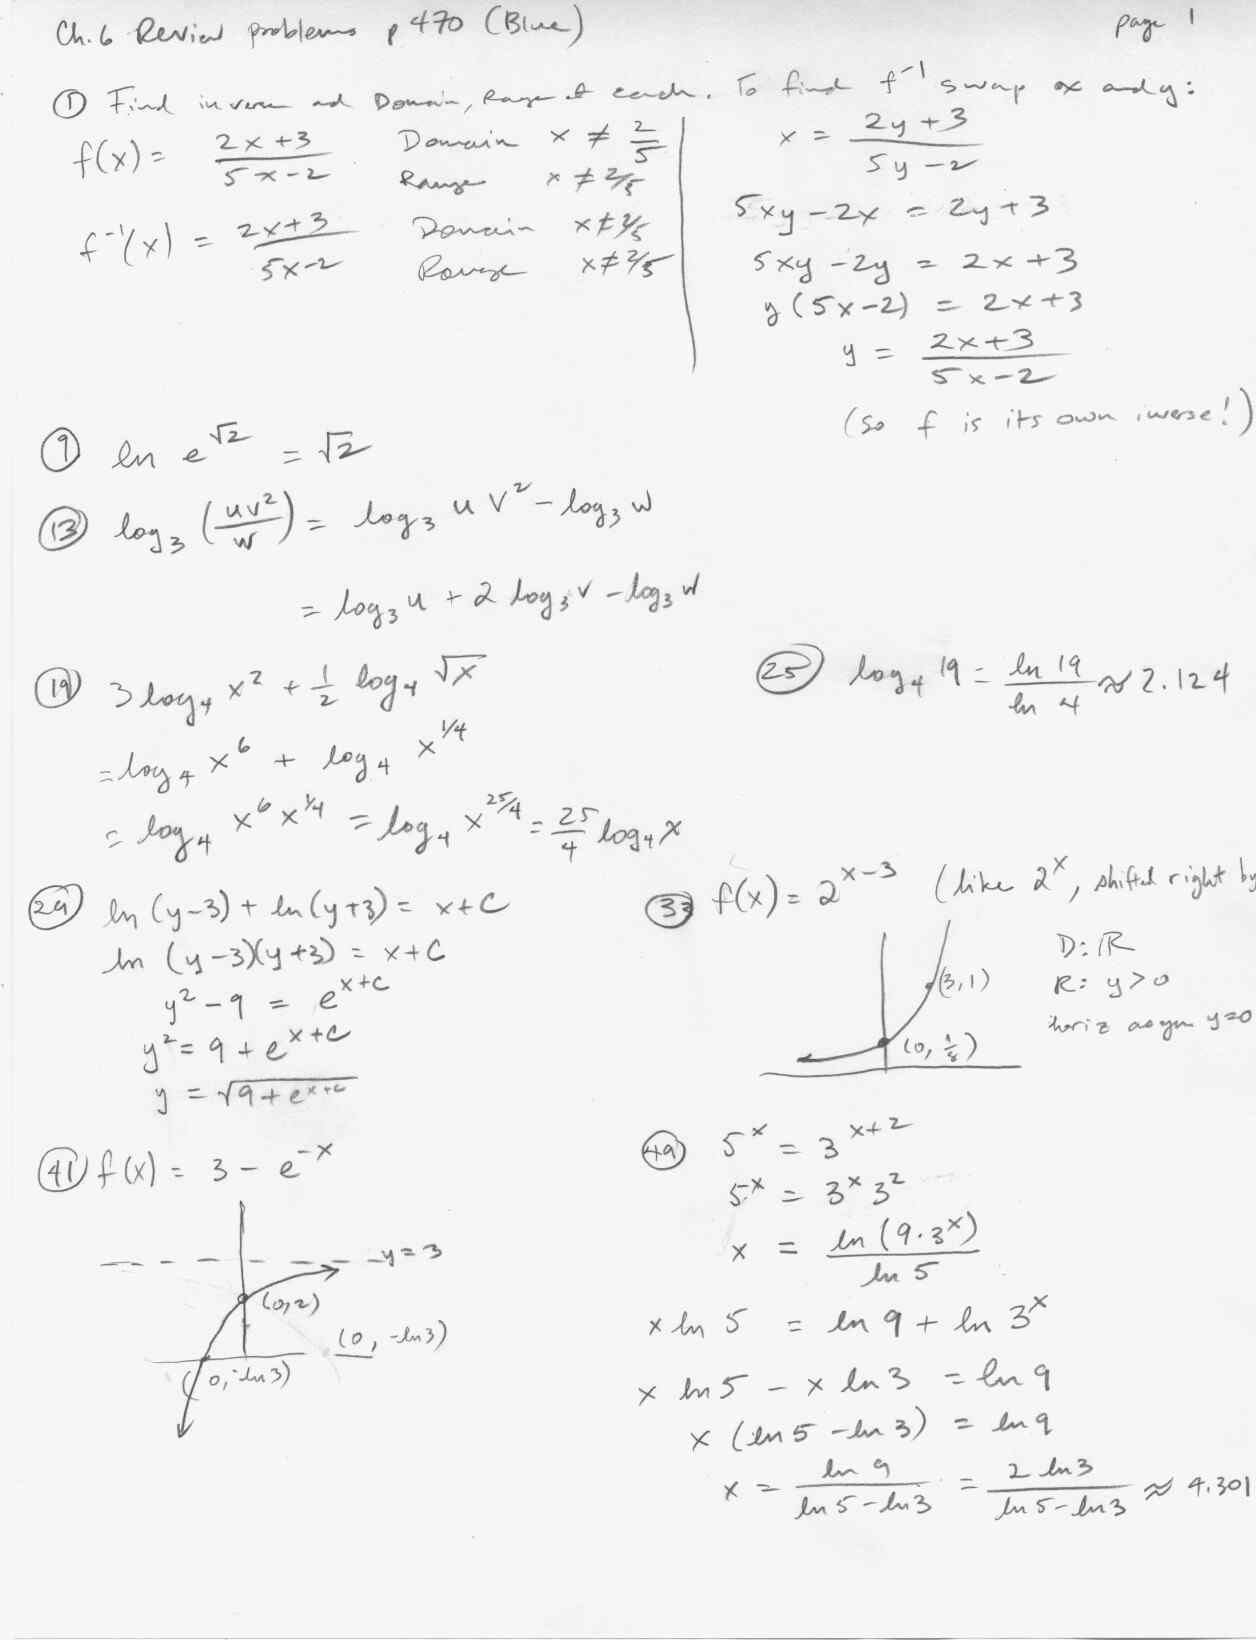 Graphing Polynomials Worksheet Algebra 2